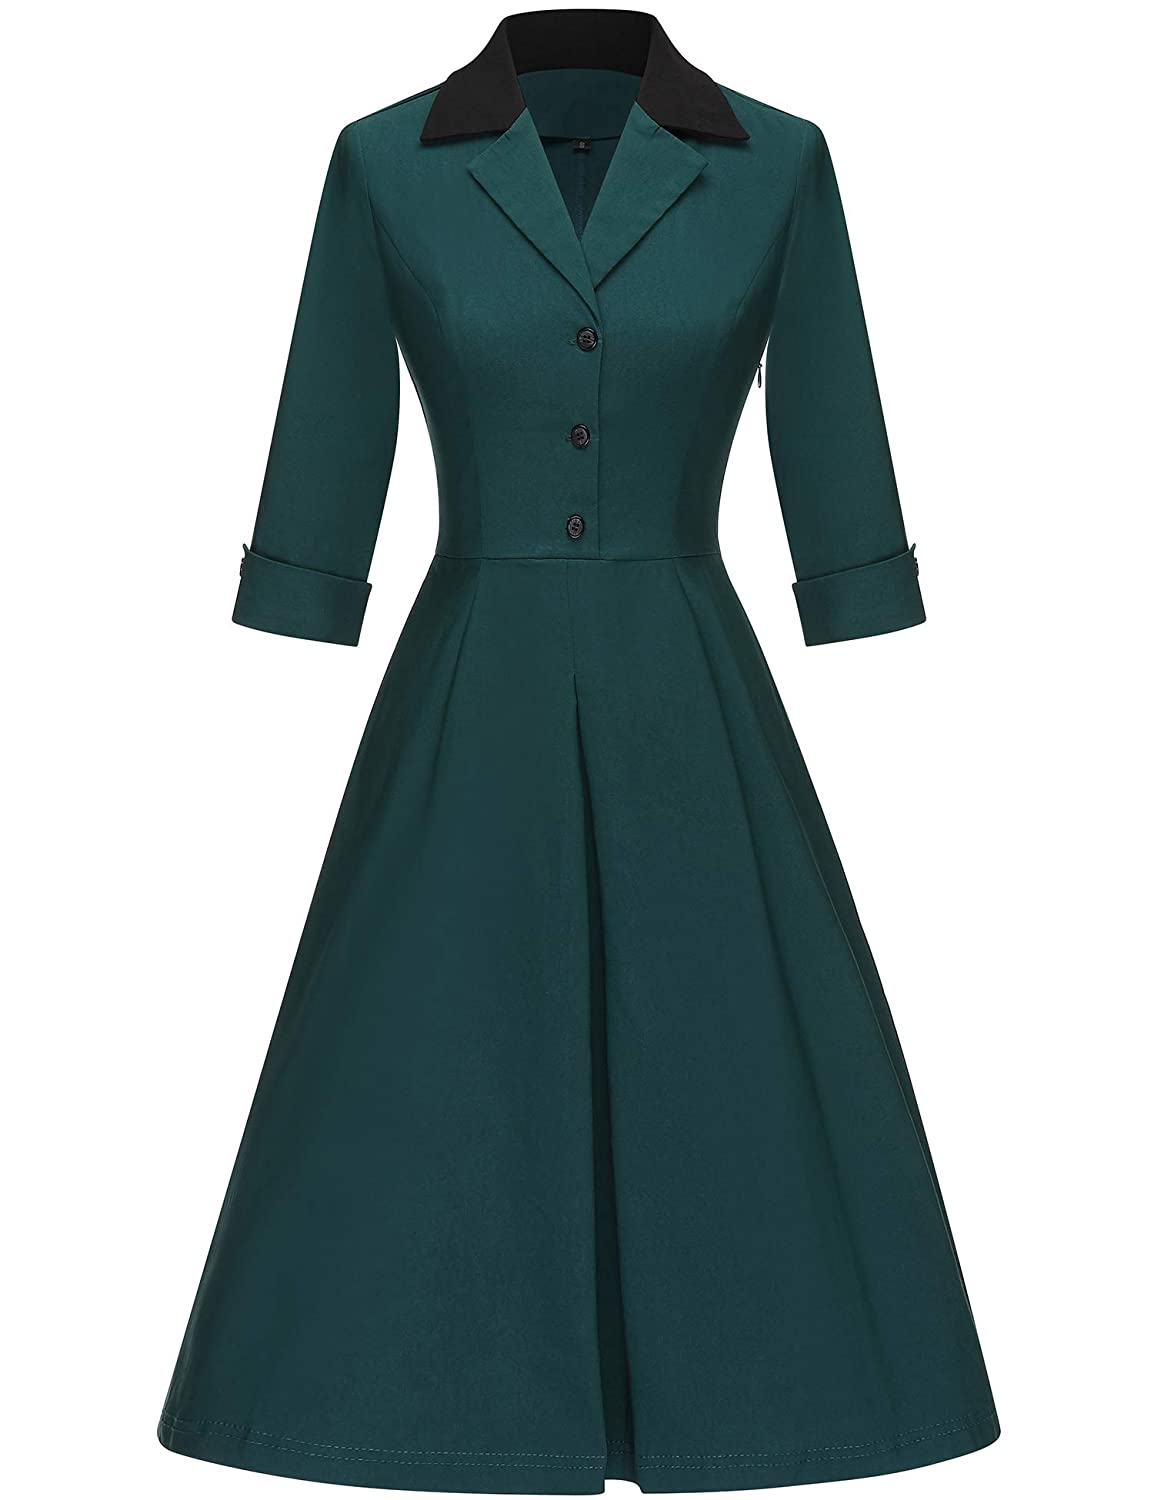 1940s Fashion Advice for Short Women GownTown Womens 1950s Vintage 3/4 Sleeves A-Line Dress $36.98 AT vintagedancer.com